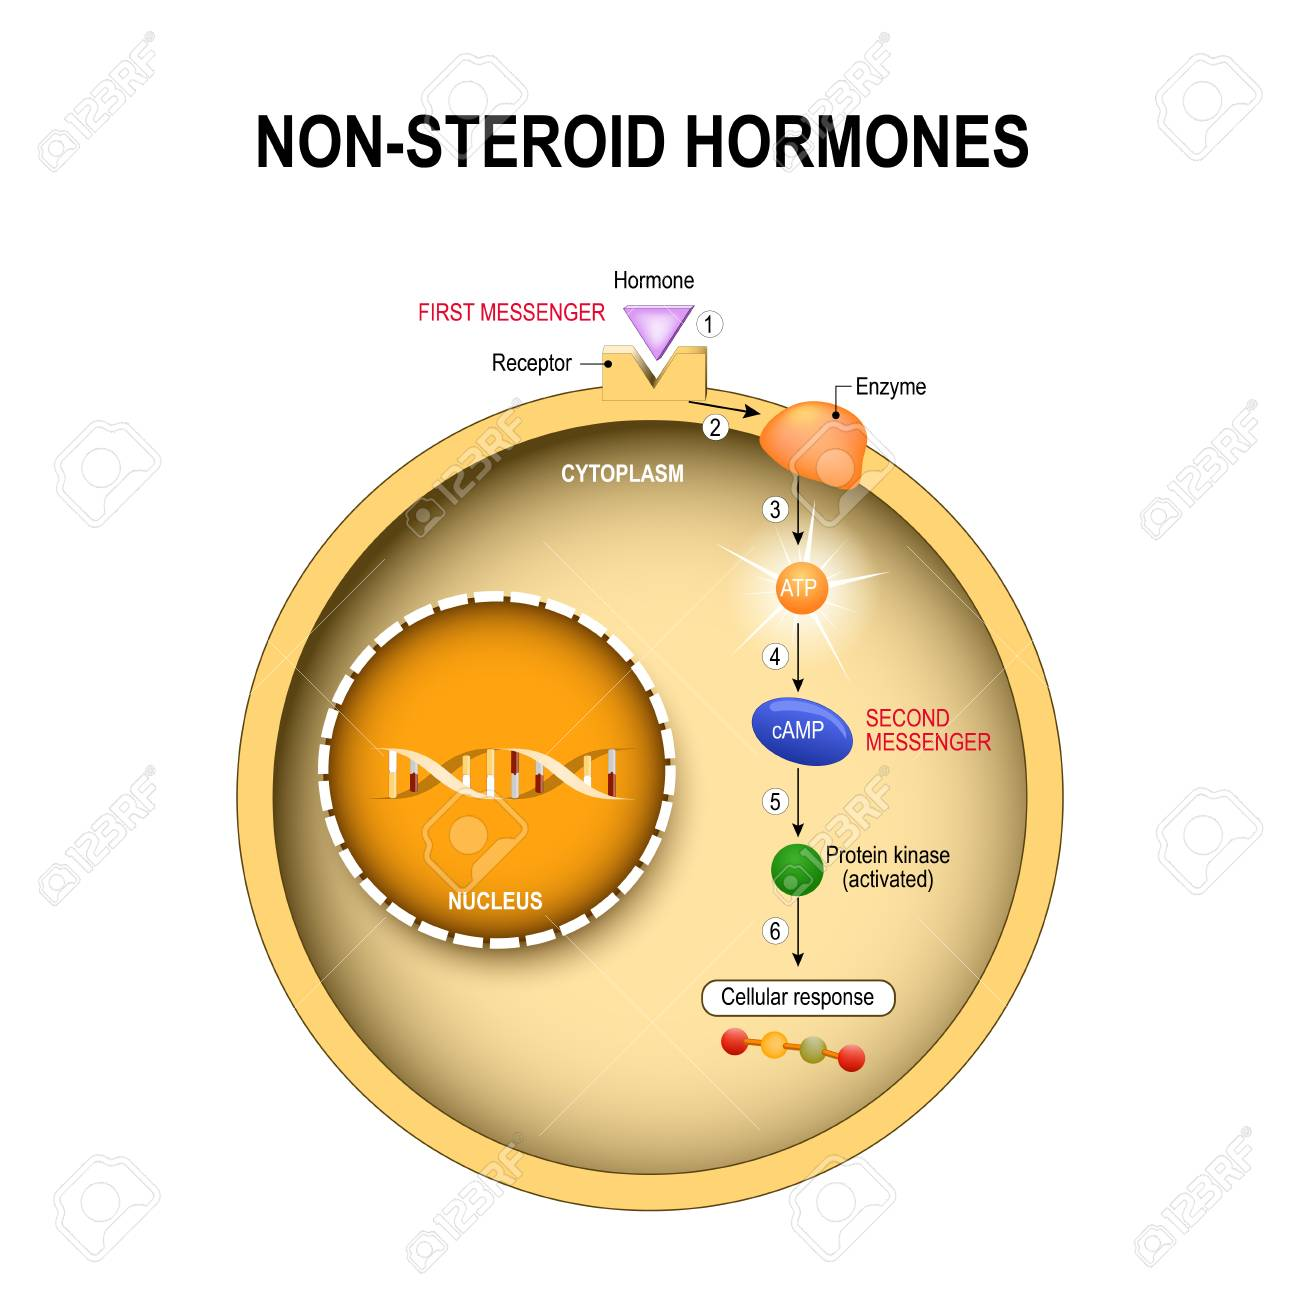 Animal cell with nucleus, cytoplasm, DNA, enzime, protein kinase, receptor, and hormone, how non-steroid hormones work. Non-steroid hormones interact with receptors on the cell membrane and activate secondary messenger systems that carry out their effects within the cell. Human endocrine system. - 95210326